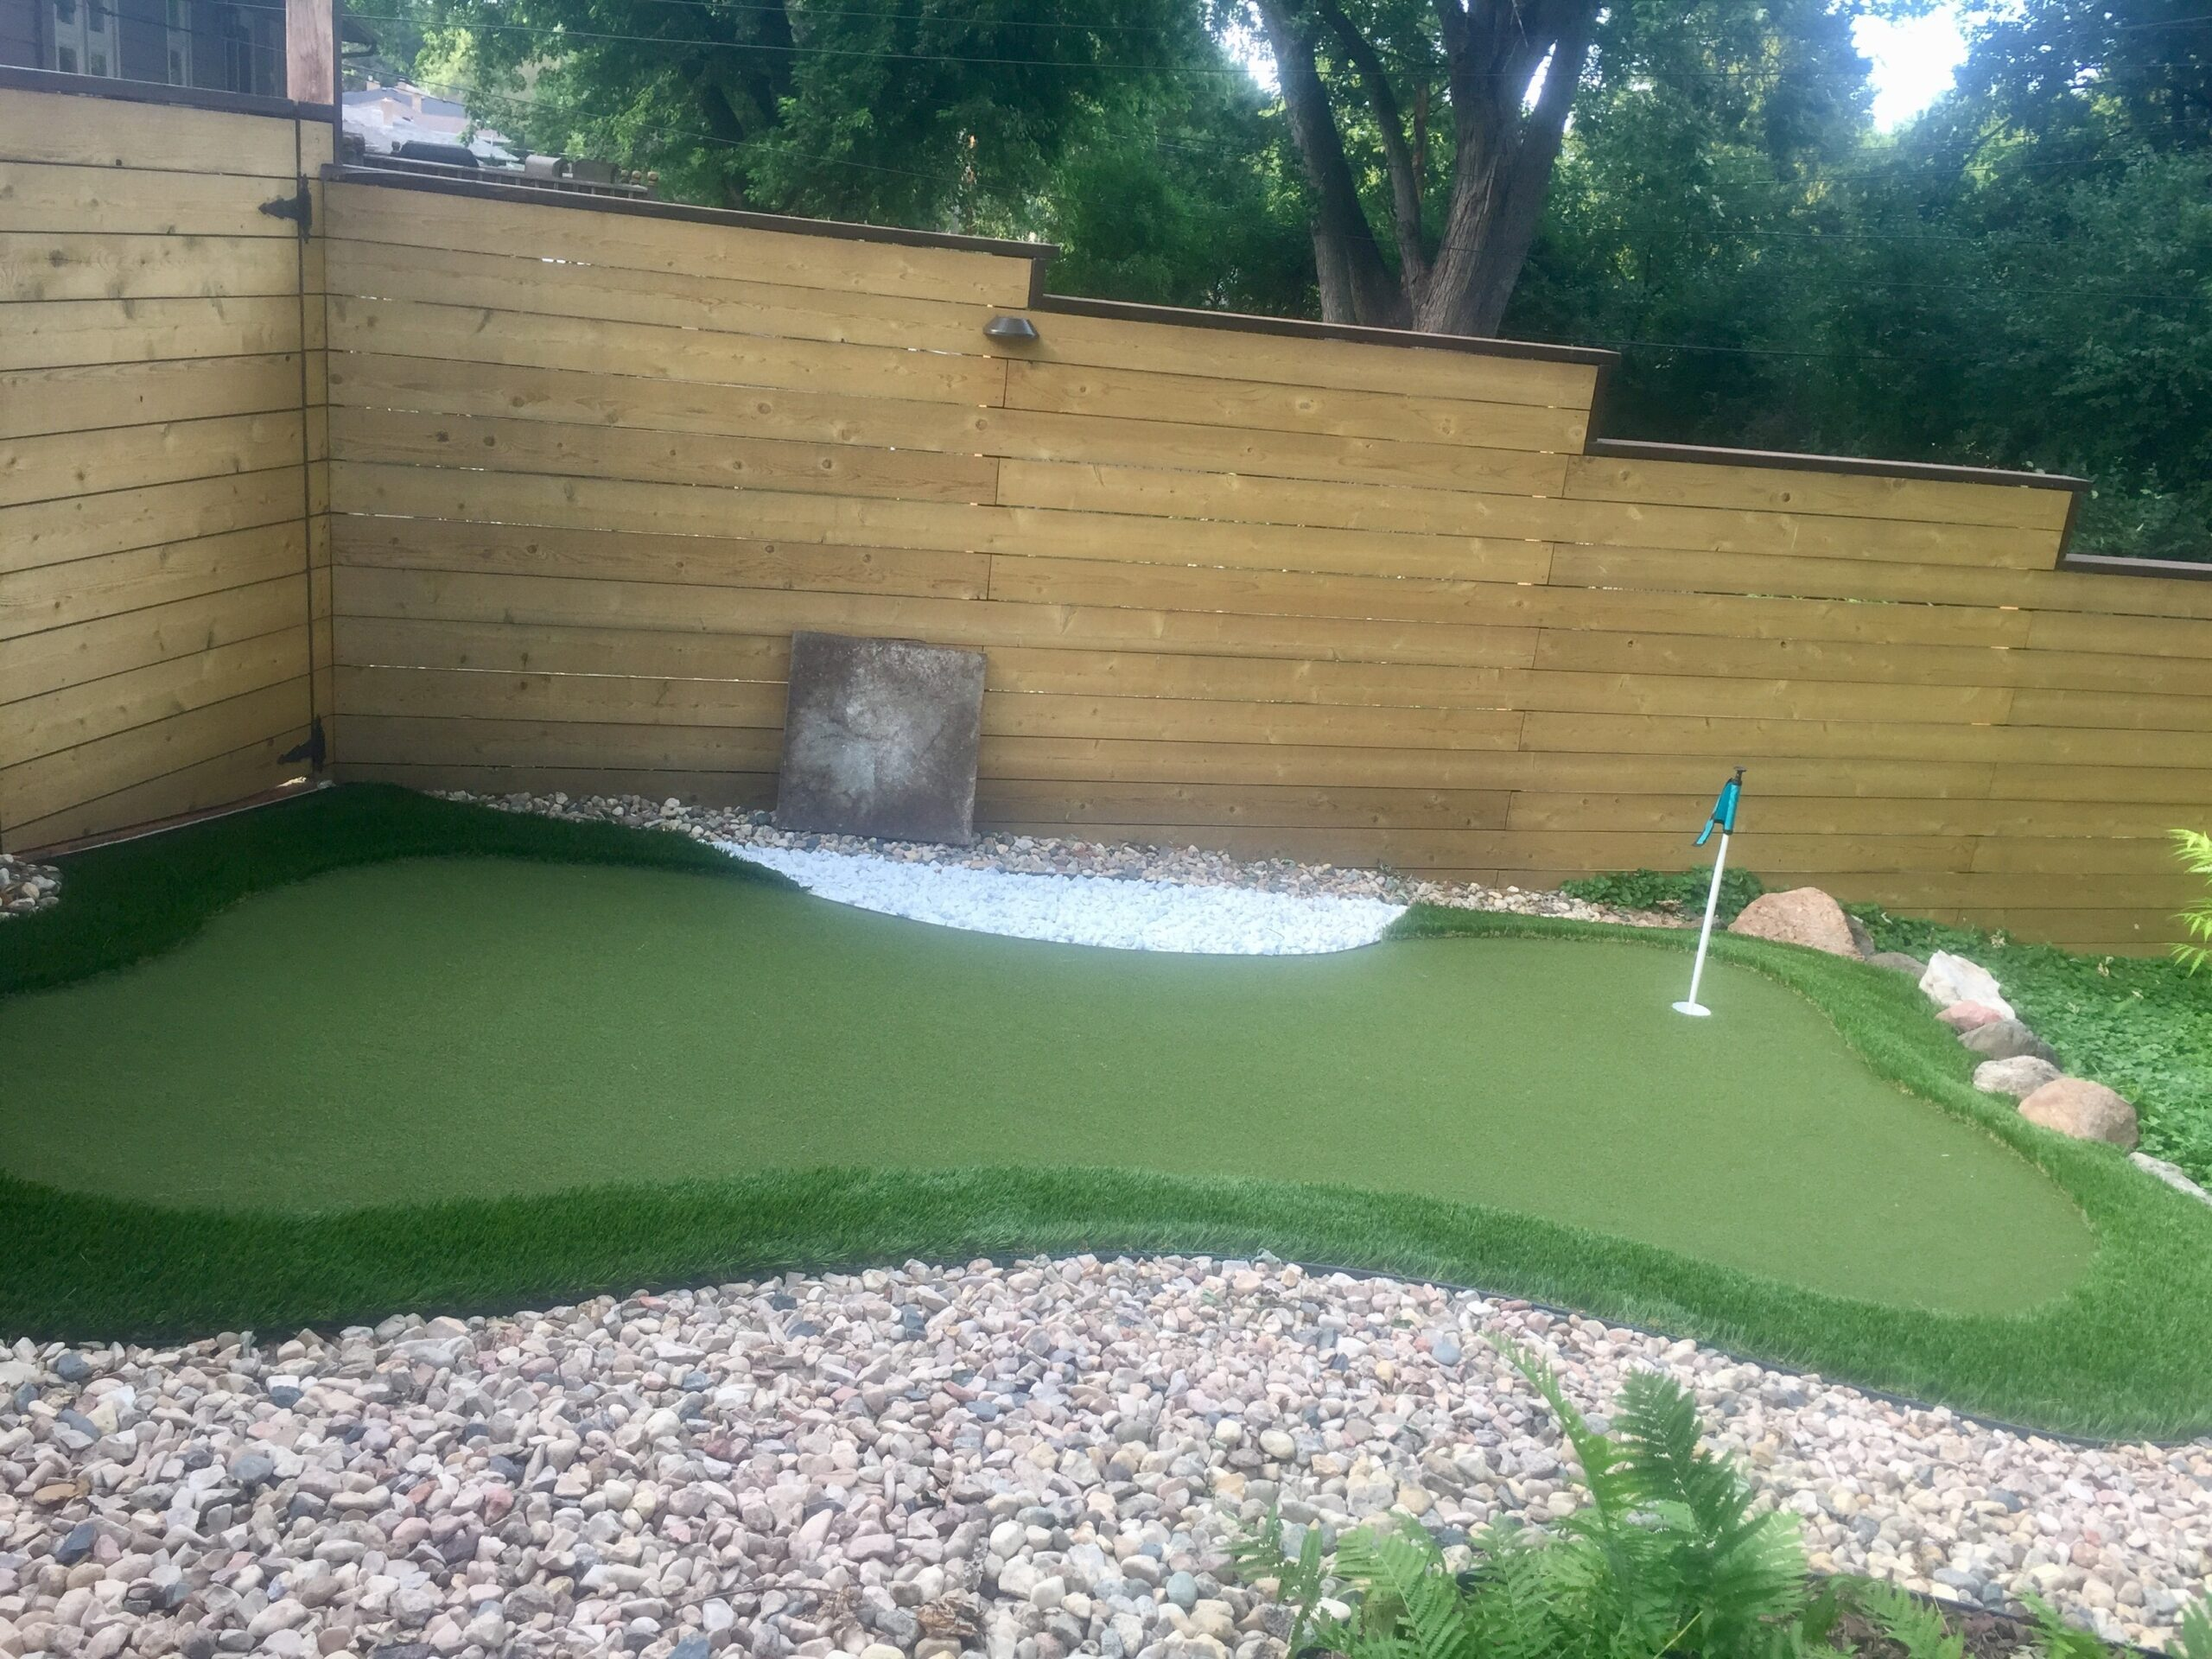 residential Indiana putting green in backyard